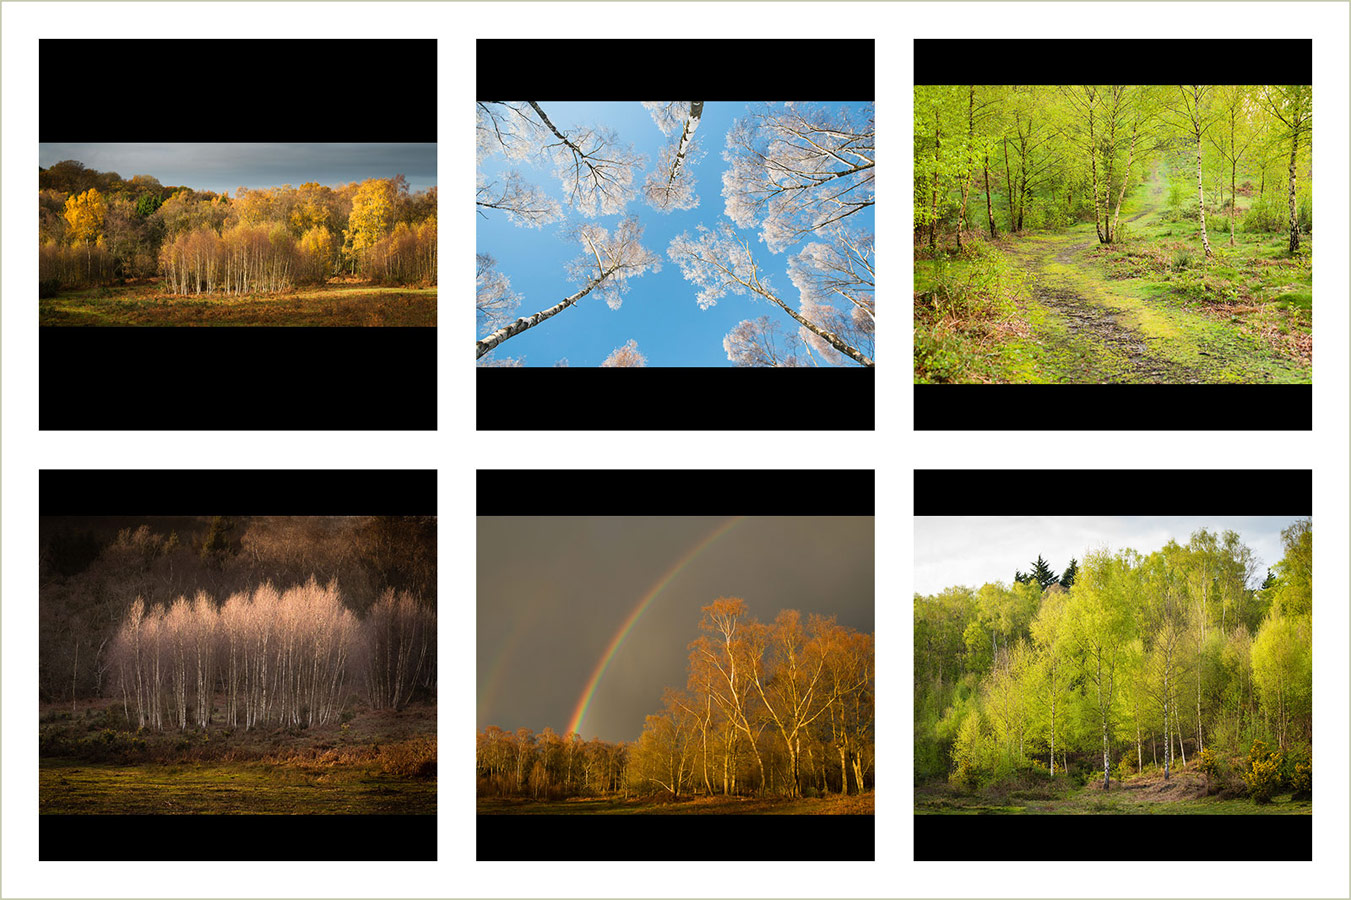 The Beauty of Birch from Autumn to Spring, © Peter Searight, Gold medal winner in category Portfolio, RHS Photographic Competition / RHS Gardening